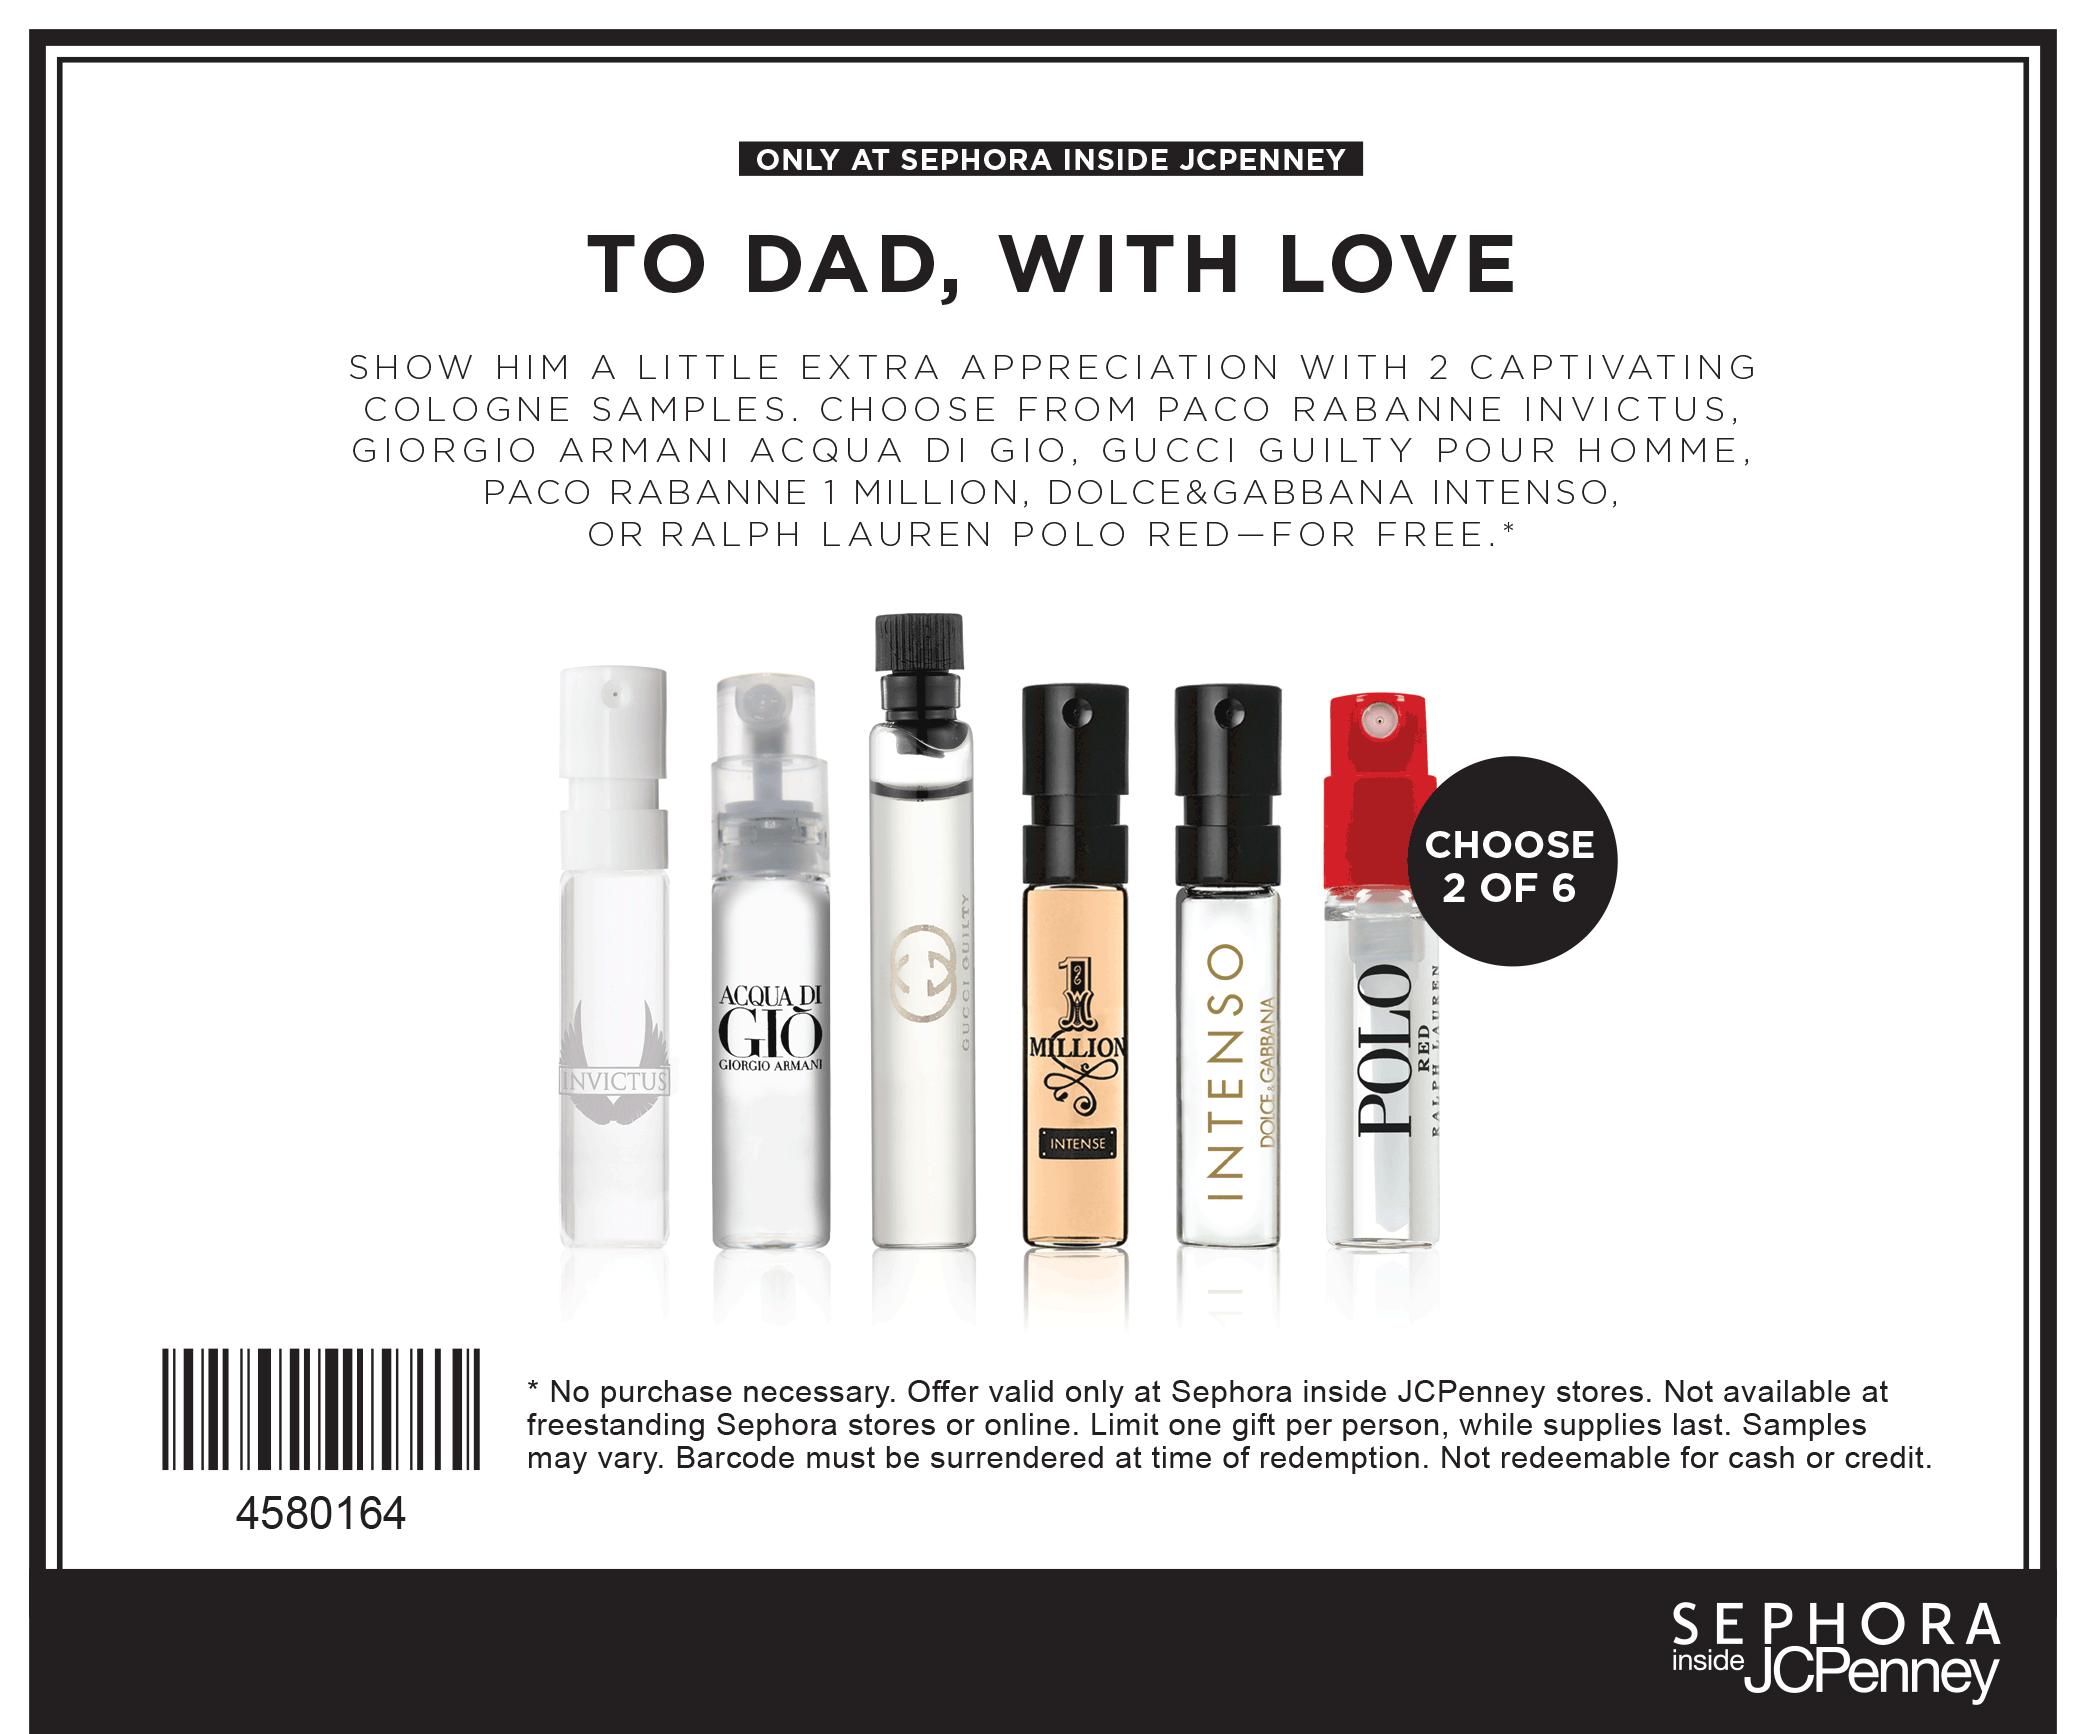 Pinned june 20th free sample couple dolce gabanna fragrance in free sample couple dolce gabanna fragrance in store at coupon free sample couple dolce gabanna fragrance in store at promo code from the coupons app fandeluxe Choice Image